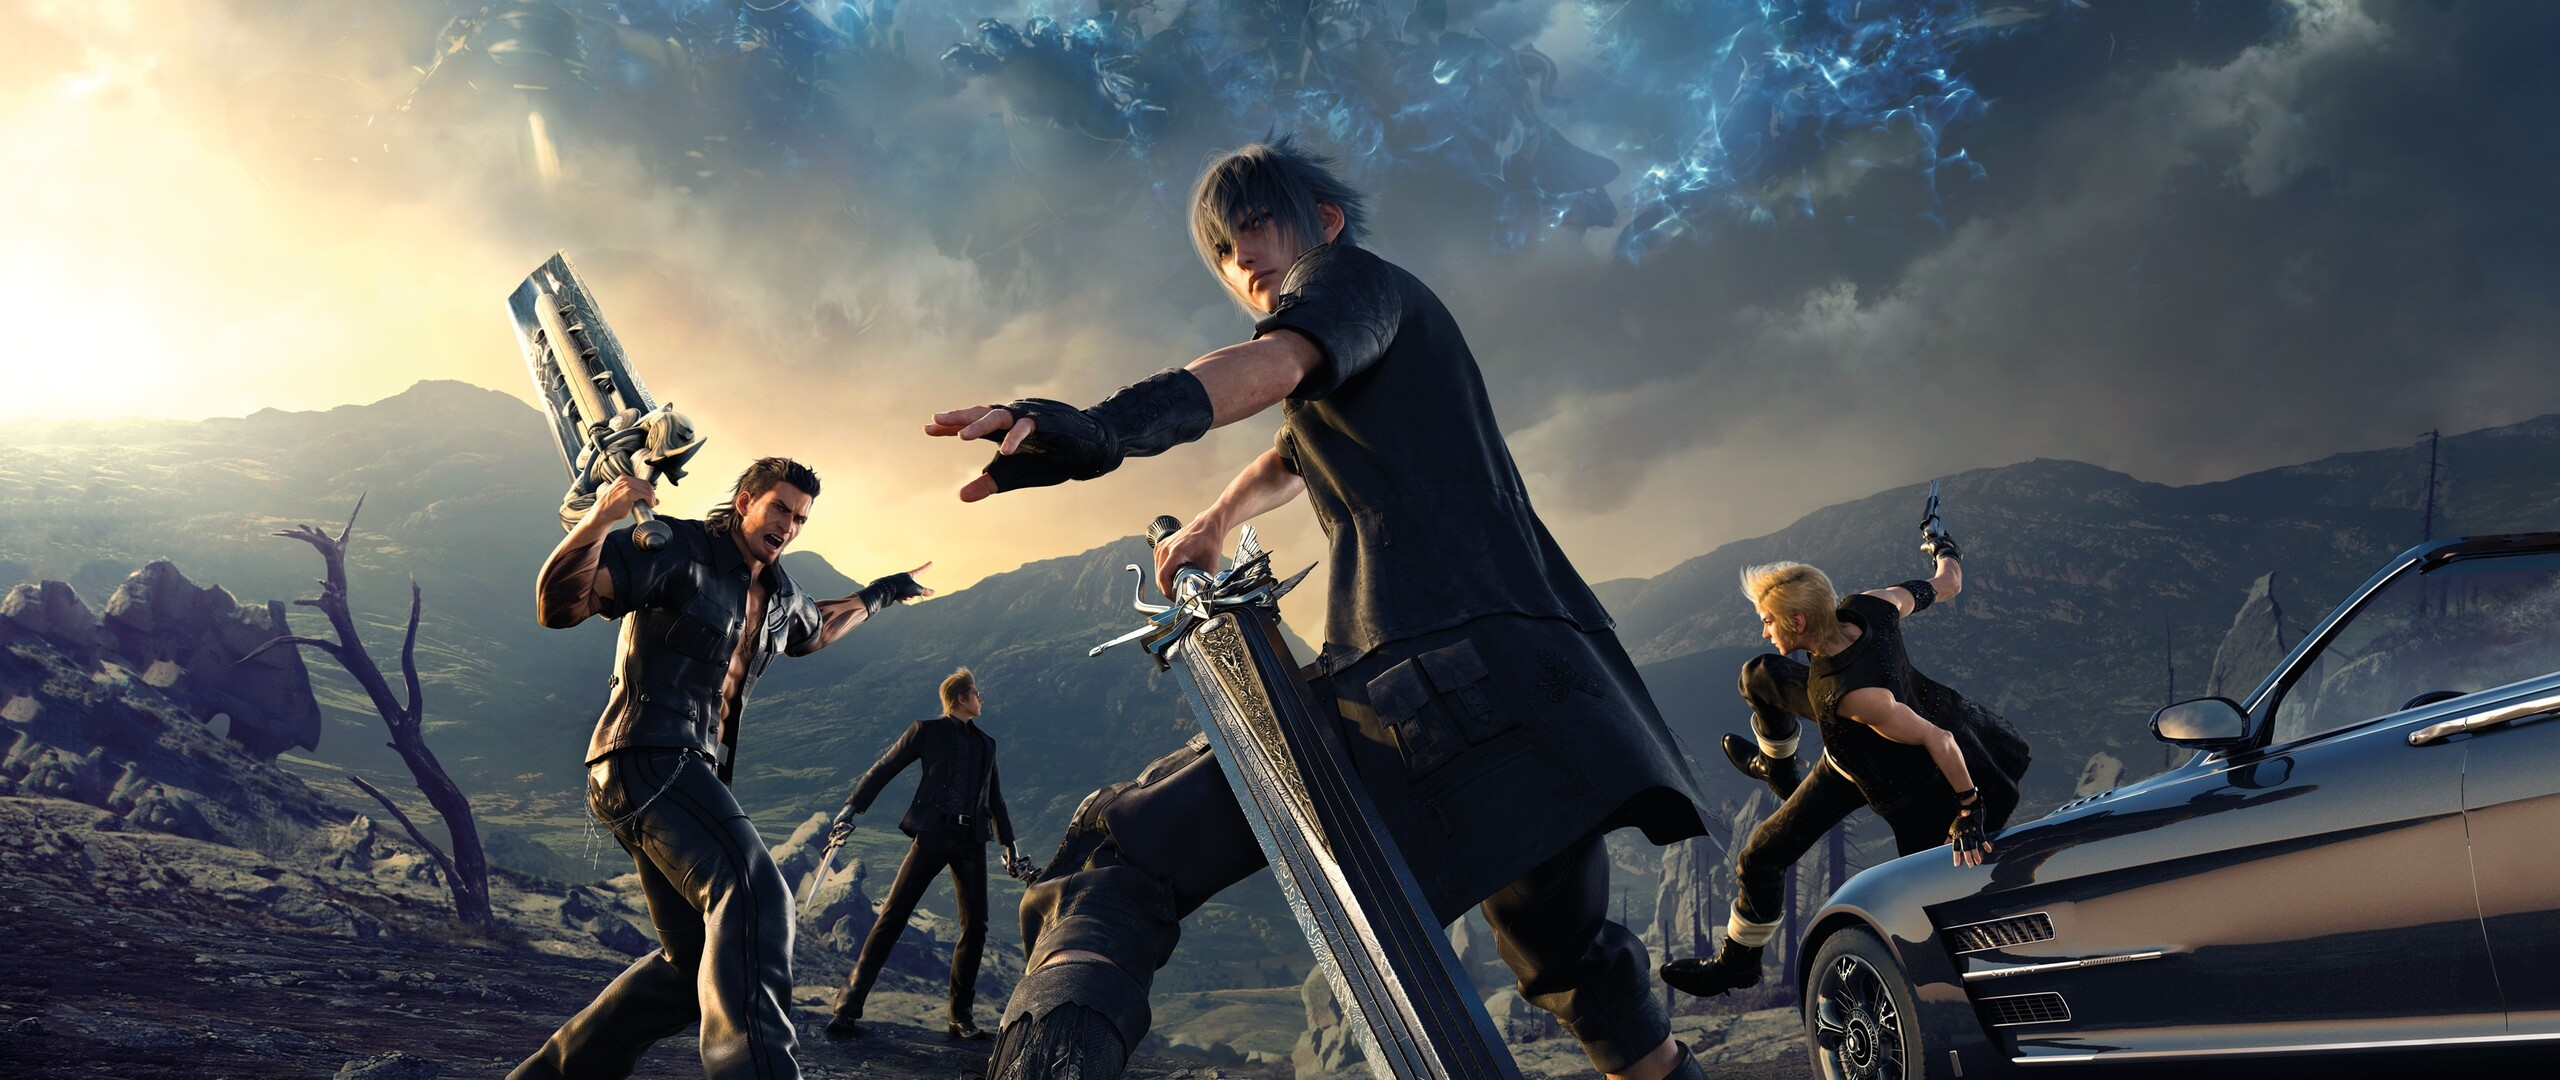 Final Fantasy Xv 4k Wallpapers: 2560x1080 Final Fantasy XV PS4 2560x1080 Resolution HD 4k